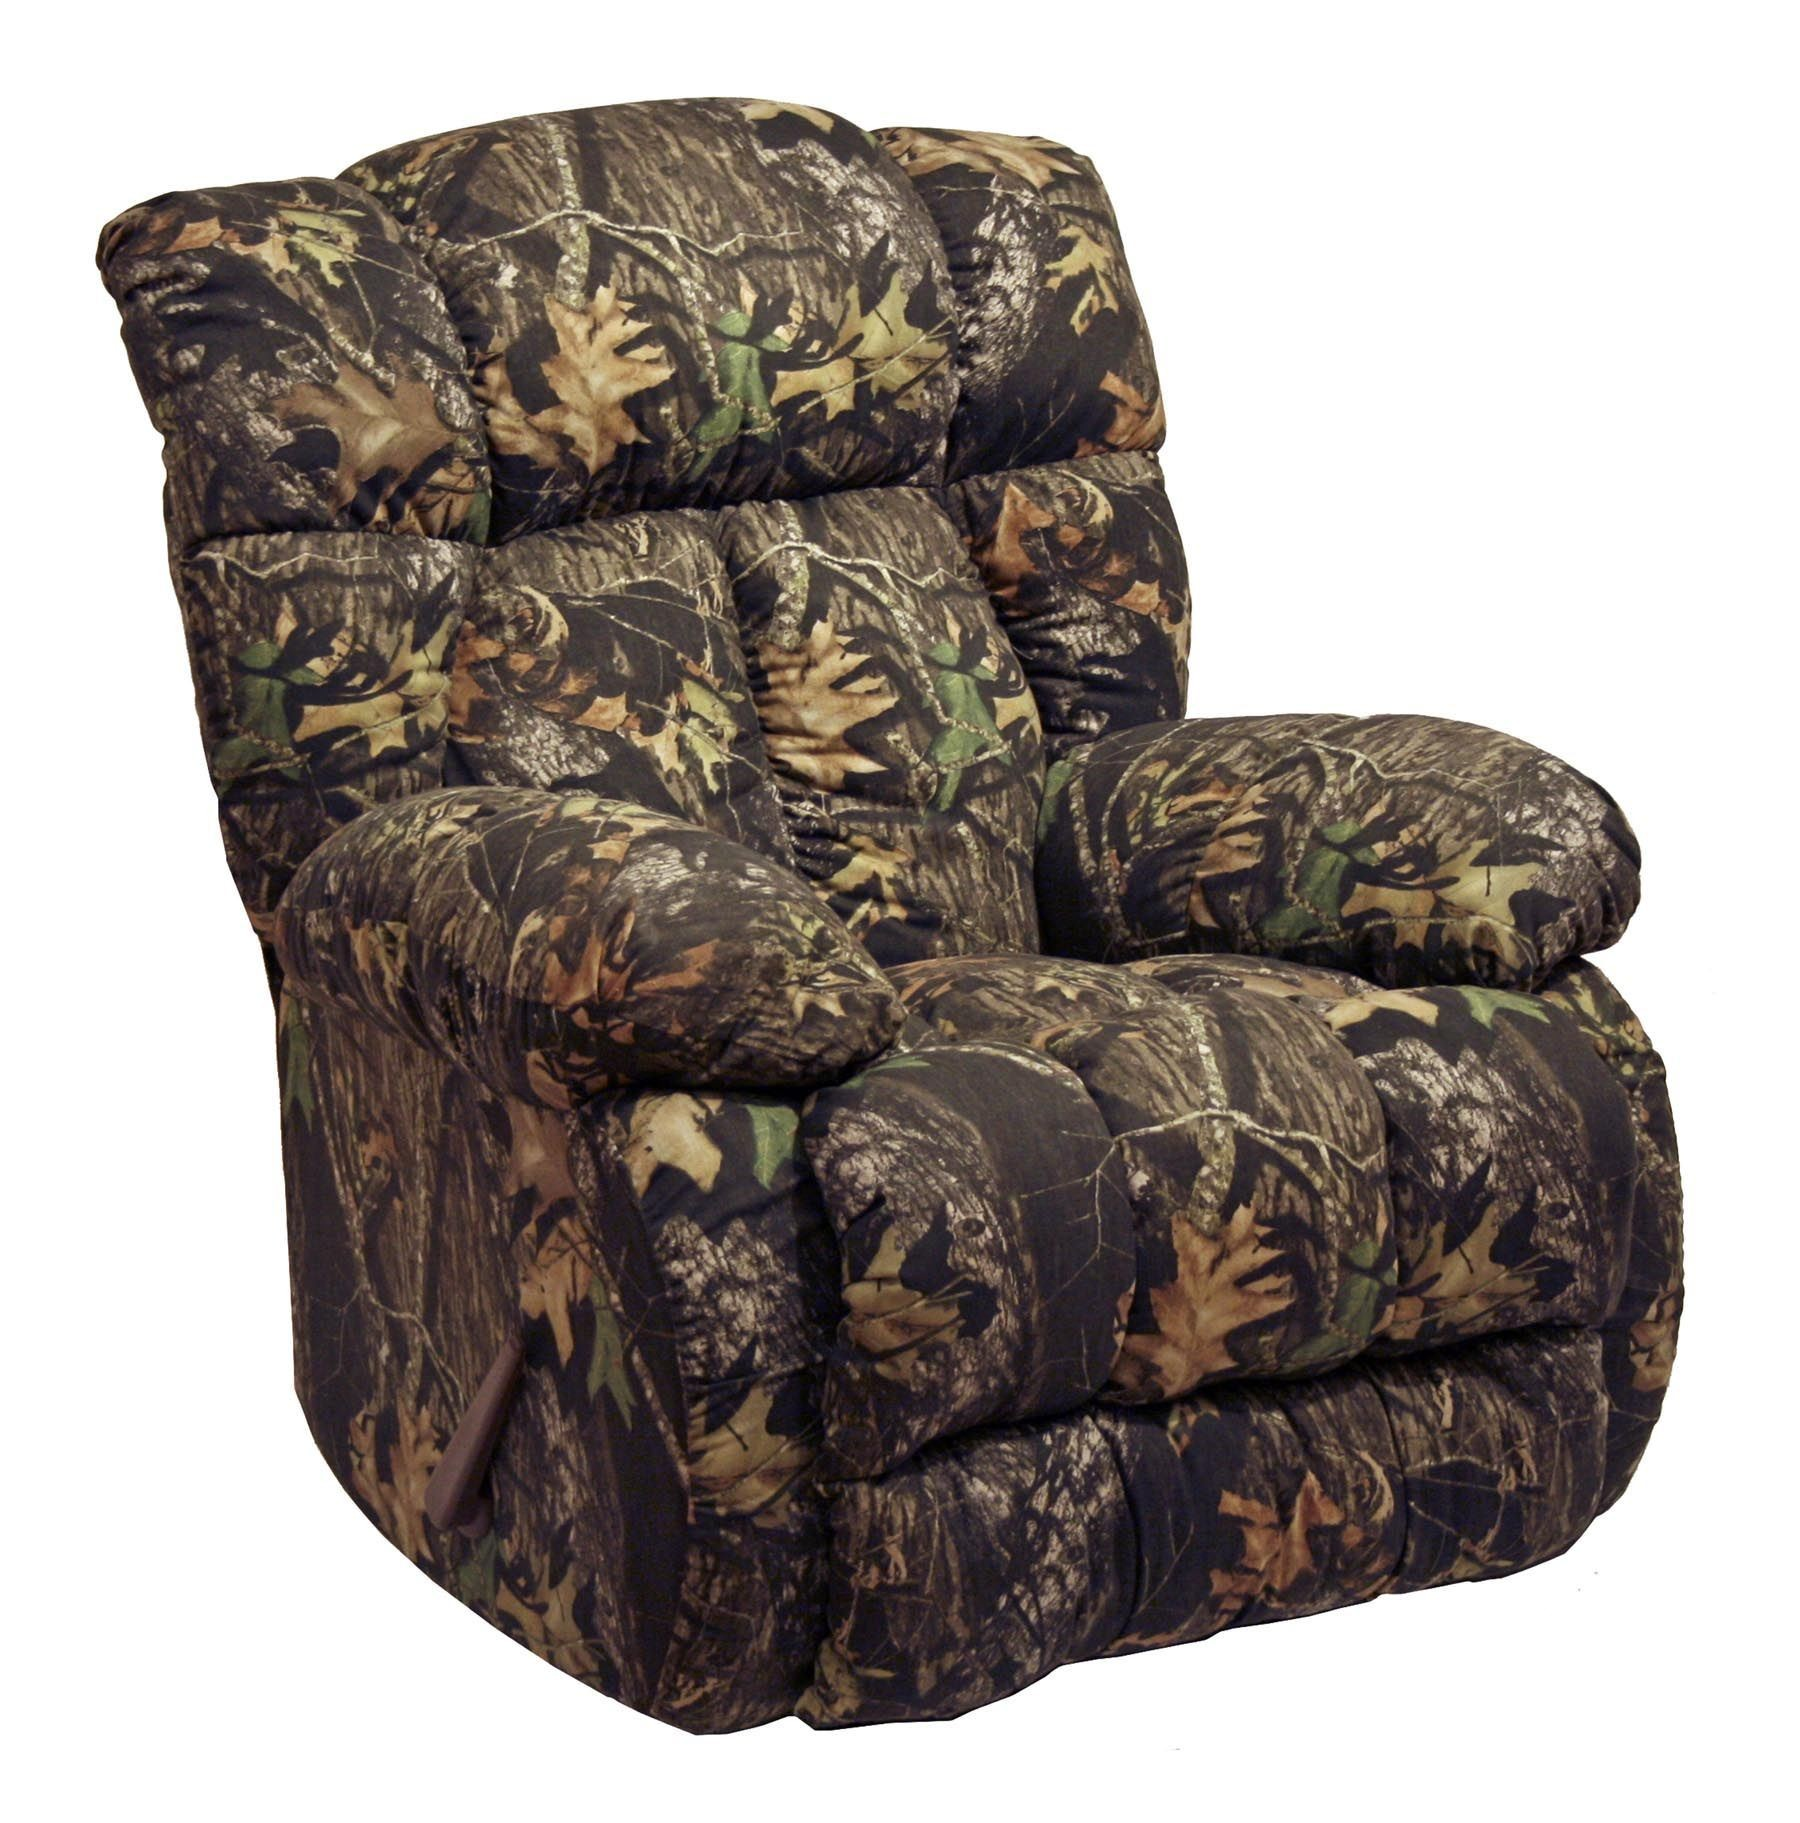 Camo Recliner Chair Laredo Mossy Oak Camo Rocker Recliner From Catnapper